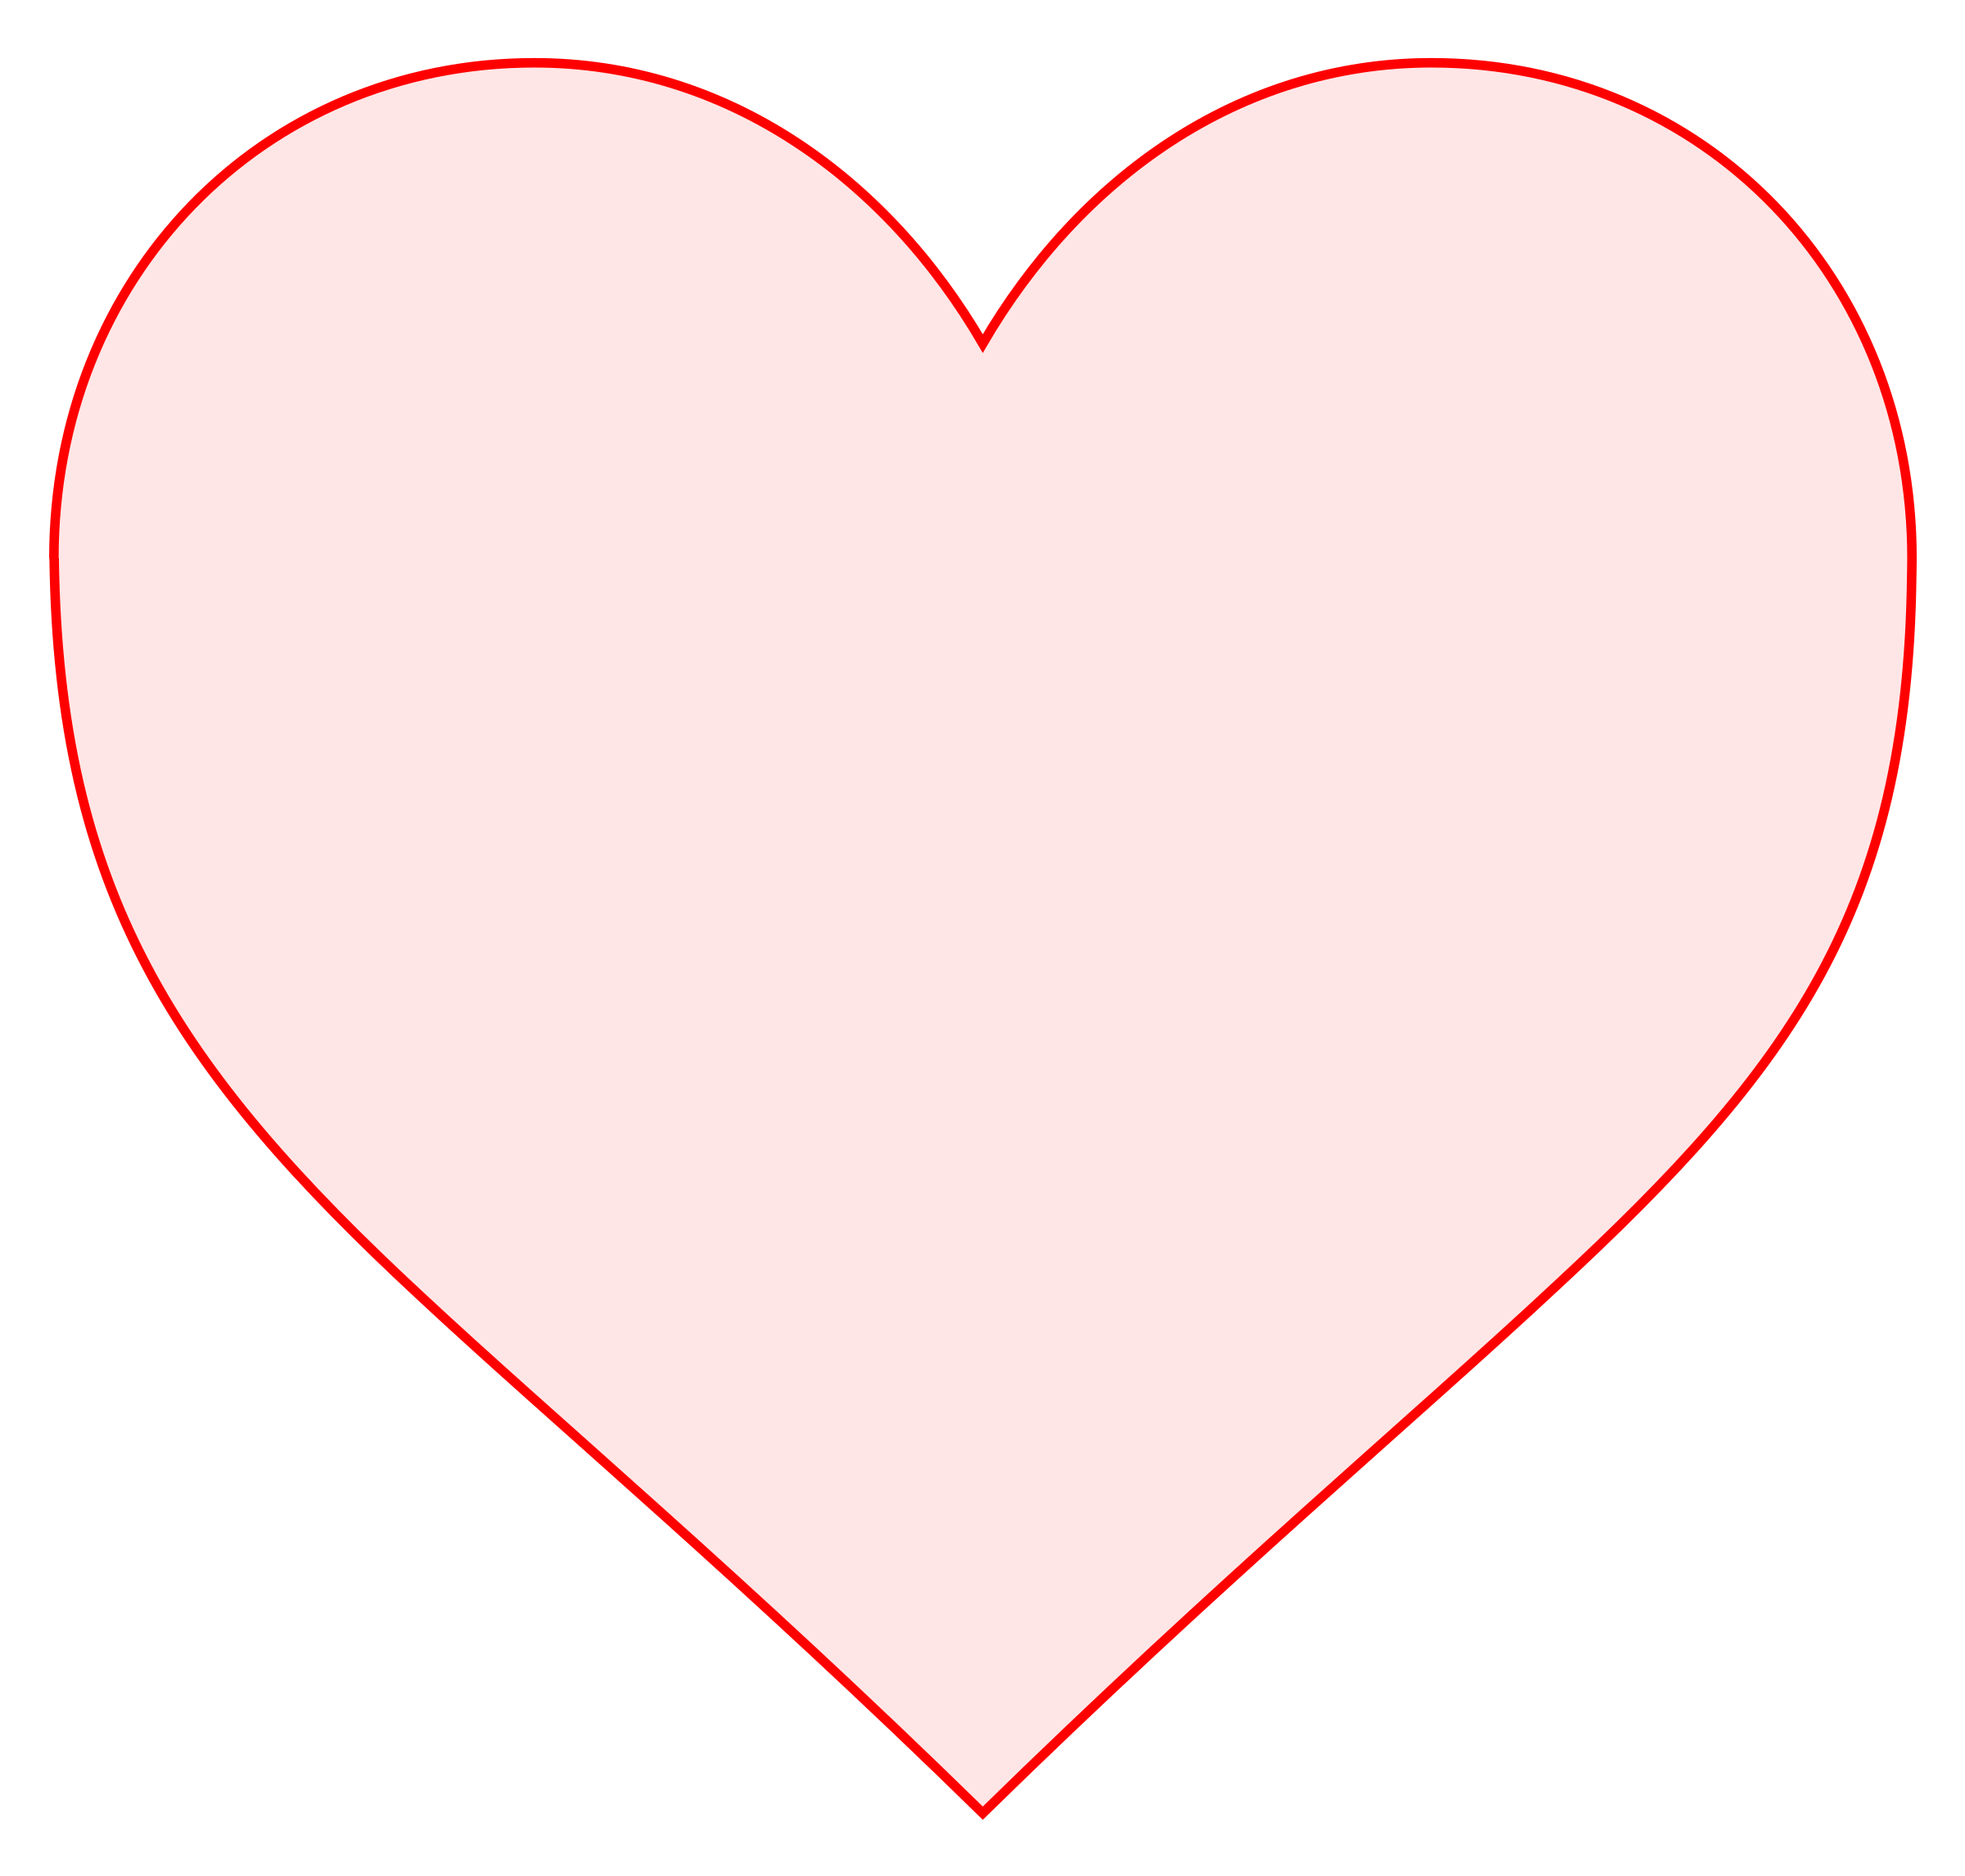 Pink heart big image. Square clipart love